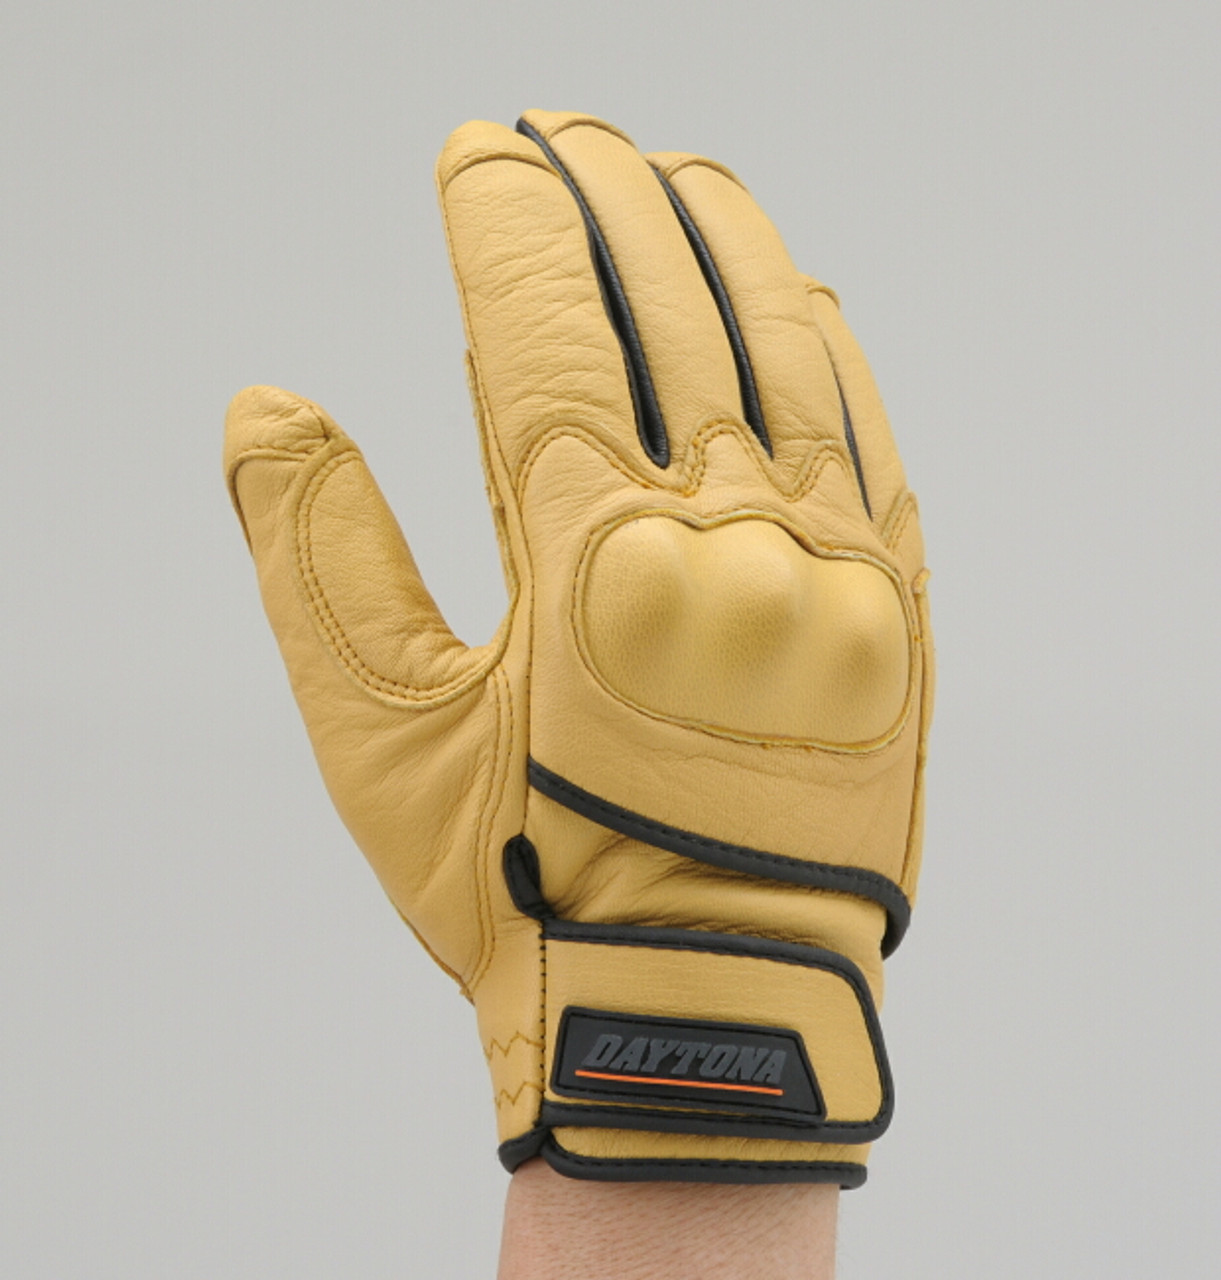 Goat Skin Gloves Protection Type, YL XL